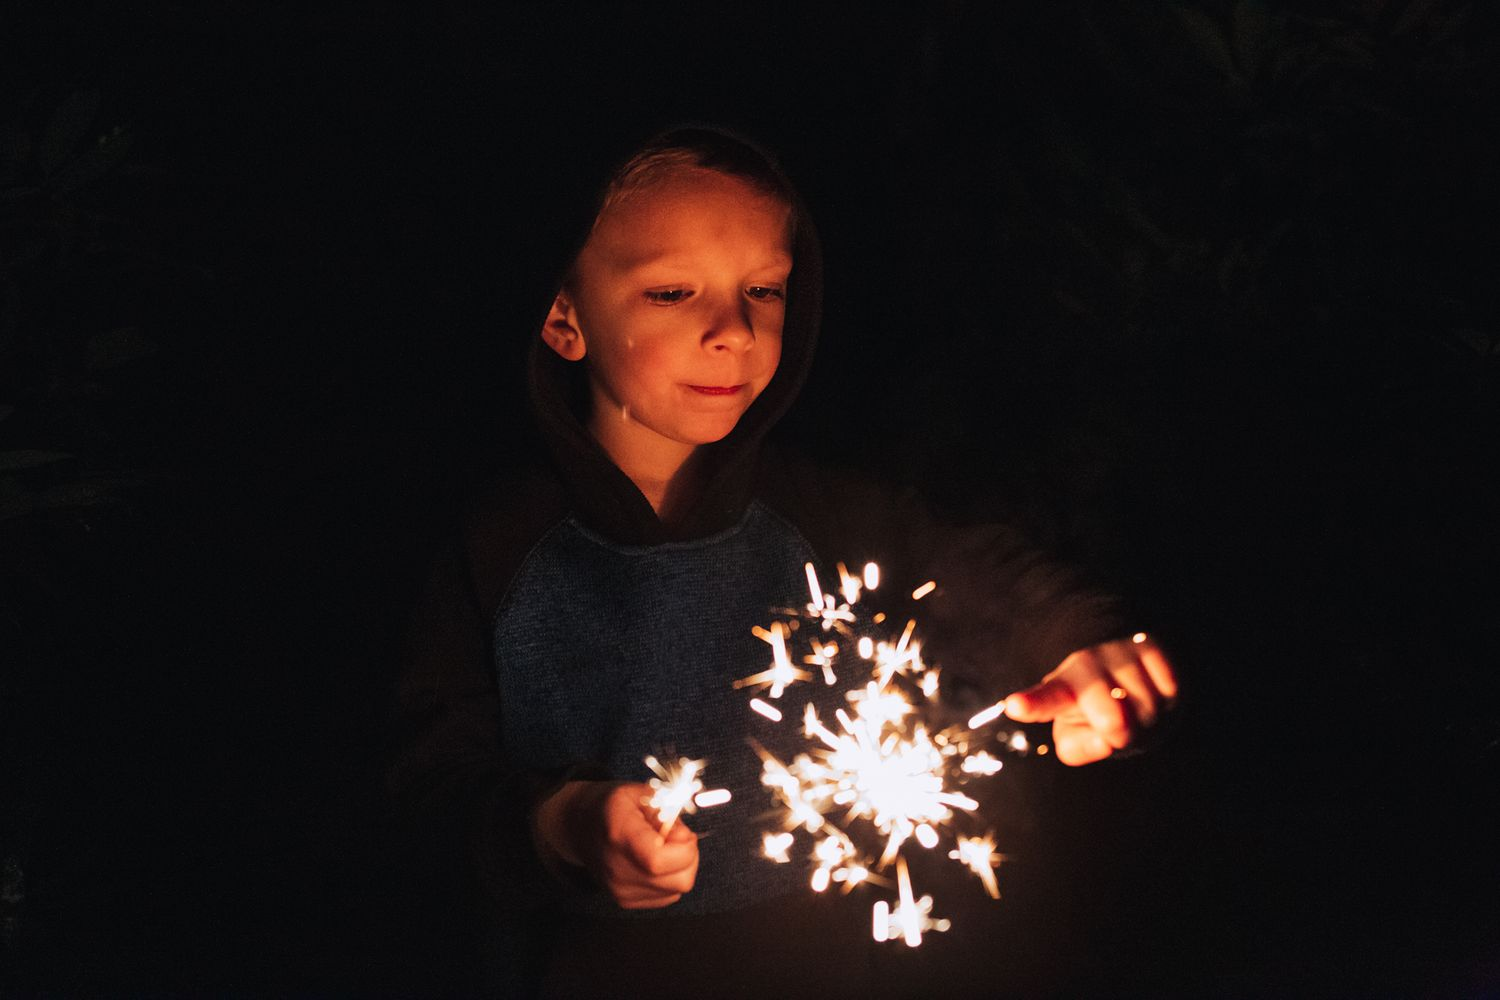 boy touching sparkler sparks on new years eve